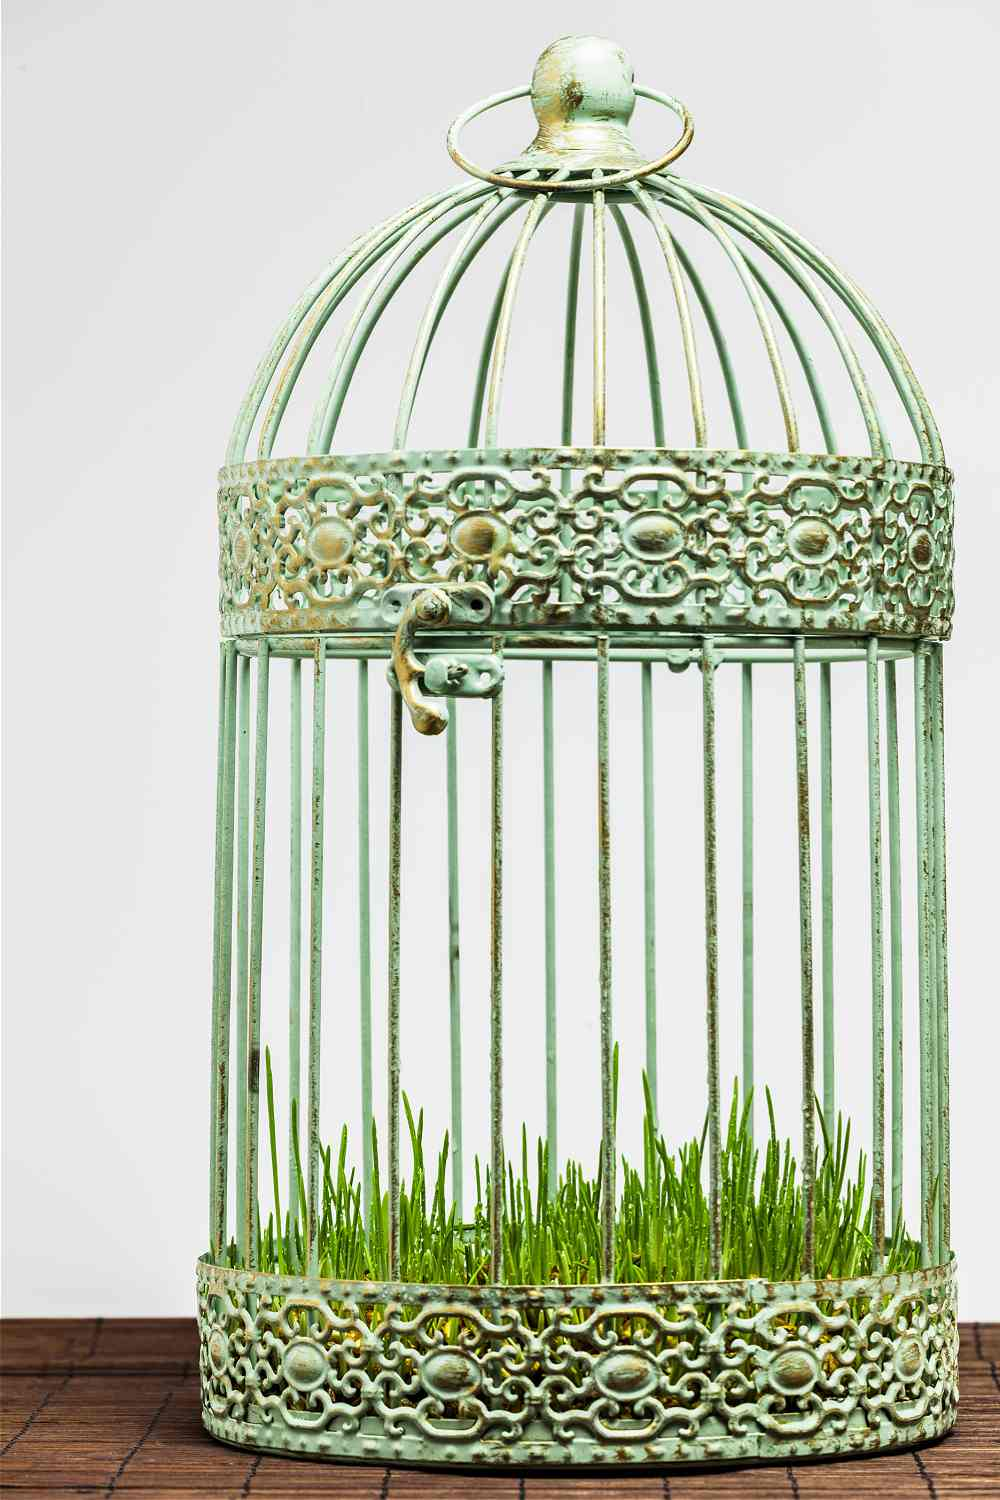 Bird cage planter with wheat grass.